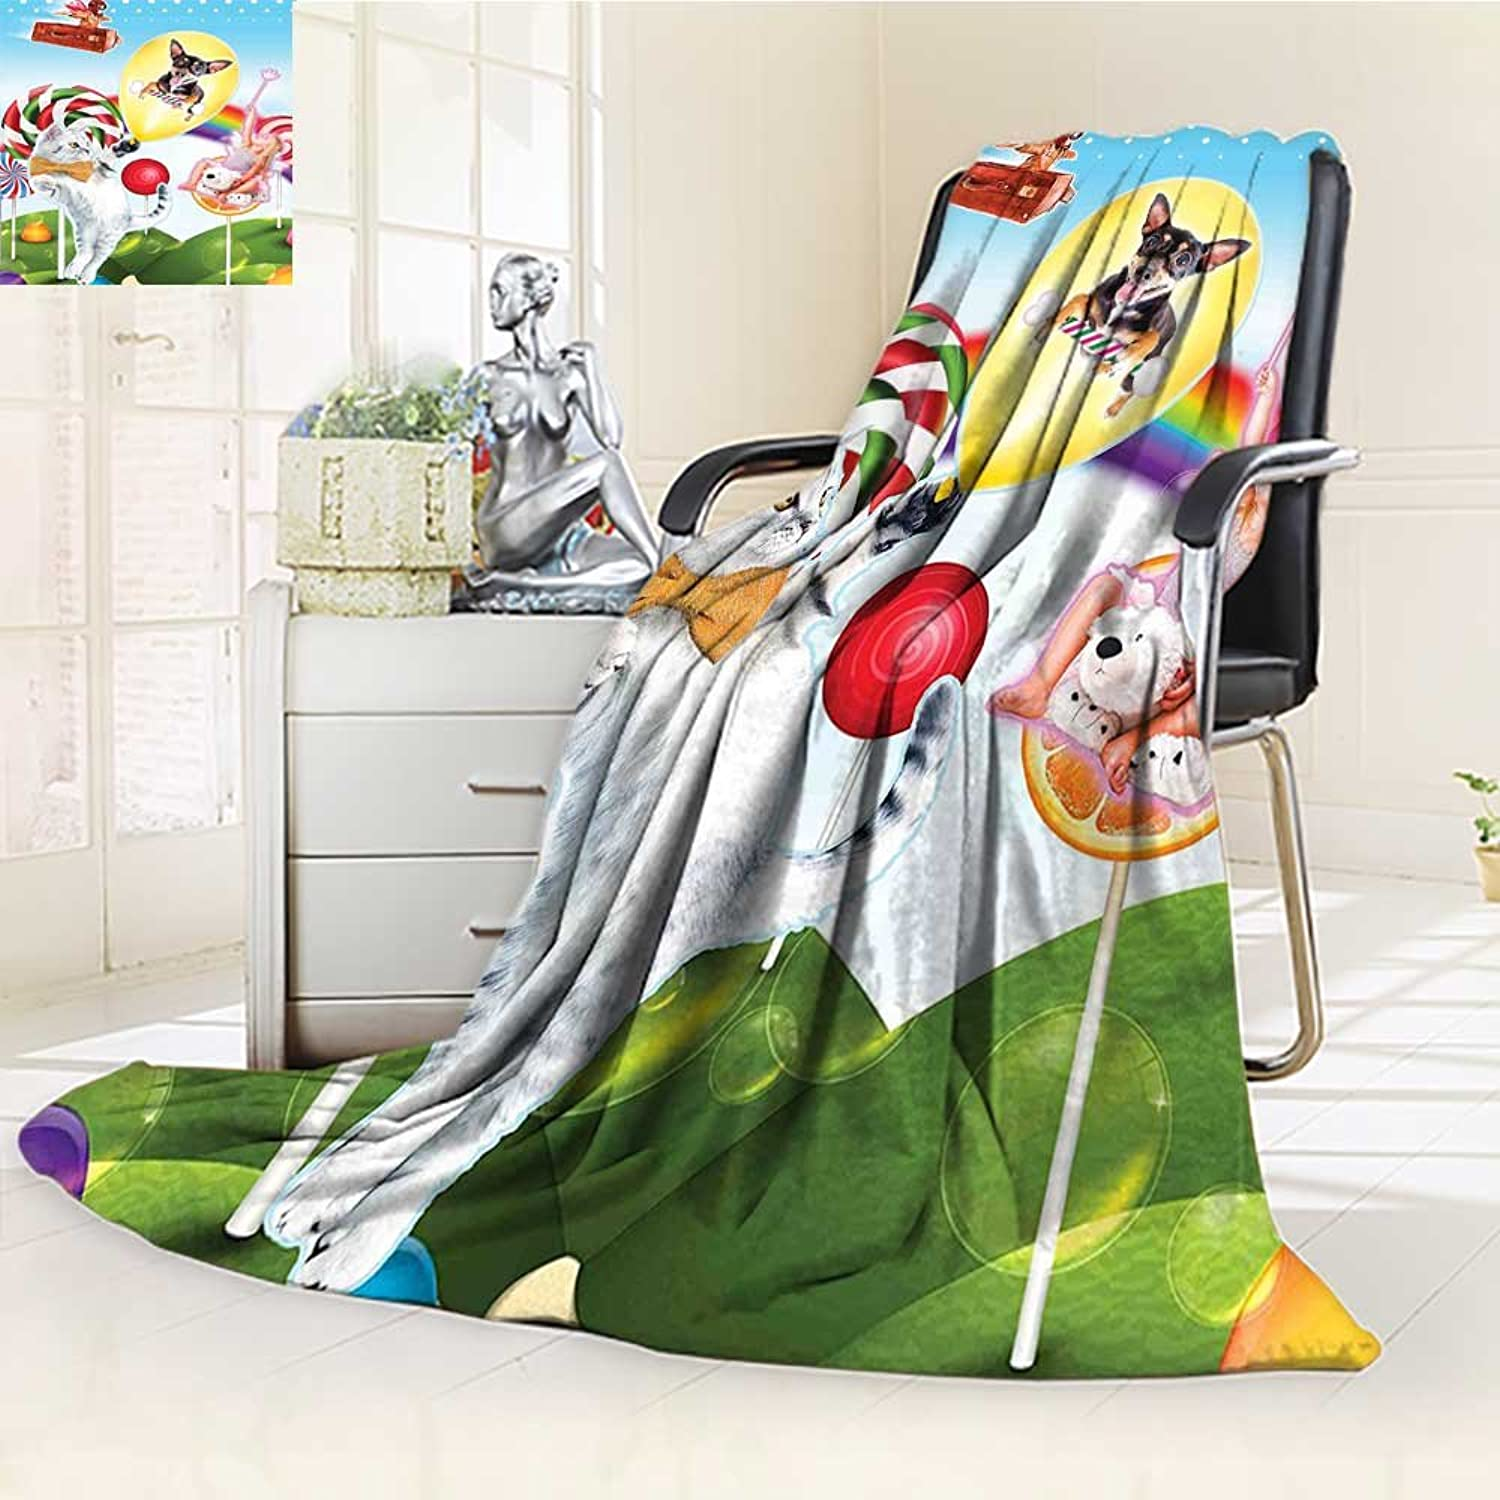 YOYIHOME 300 GSM Fleece Duplex Printed Blanket halongLand Rainbow Candy Trees Cat Dog Fairy Girl Boy Flying in Suitcase Multicolor Super Soft Warm Fuzzy Bed W47 x H59